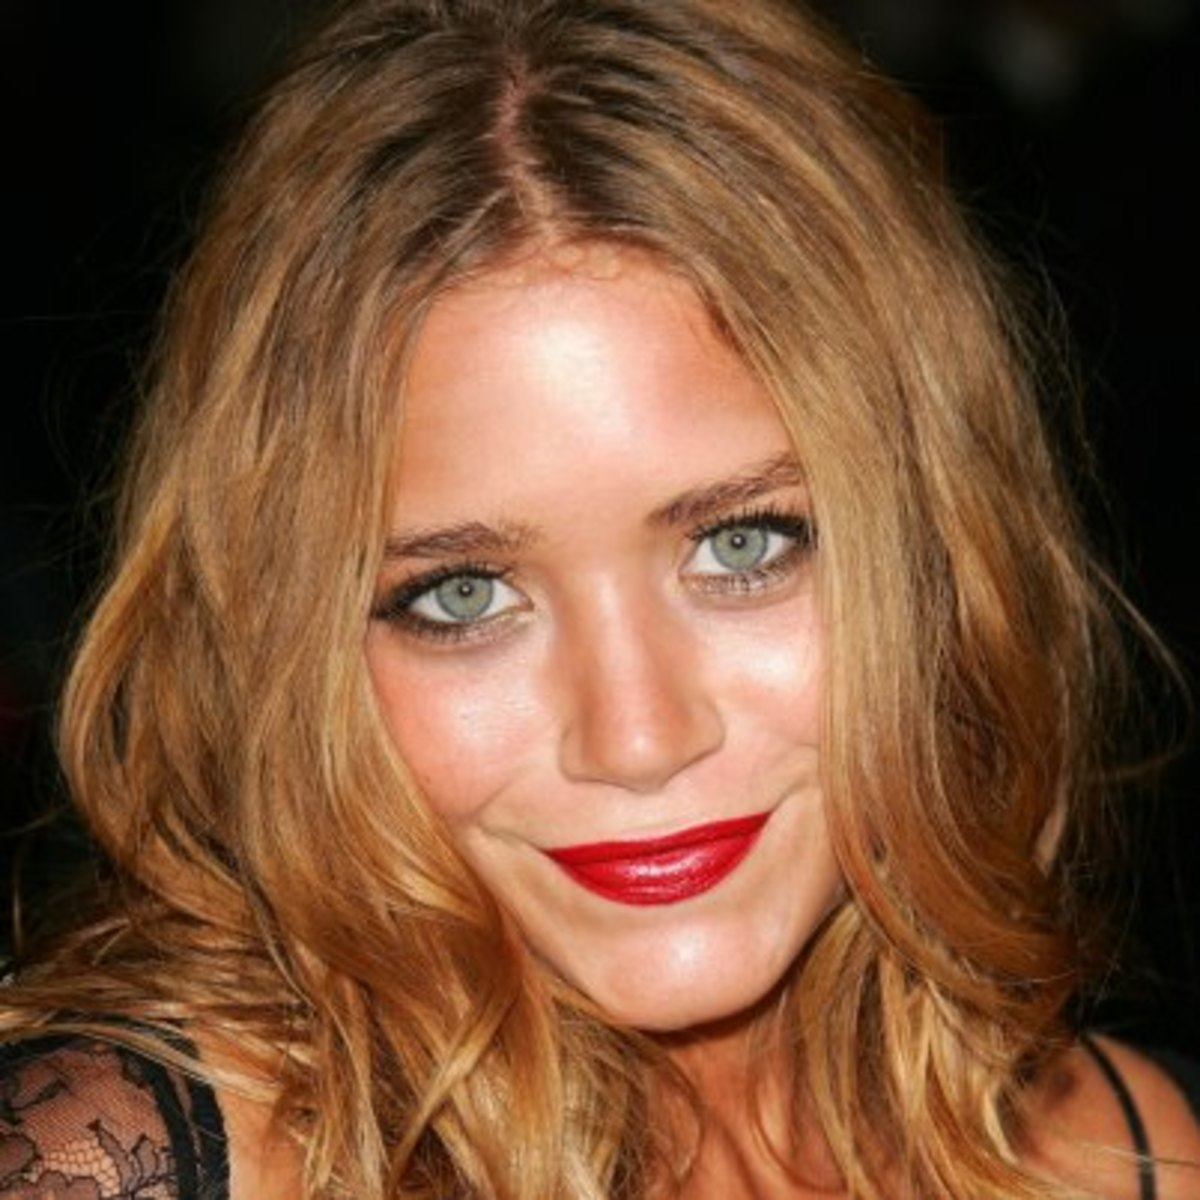 images Mary-Kate Olsen born June 13, 1986 (age 32)